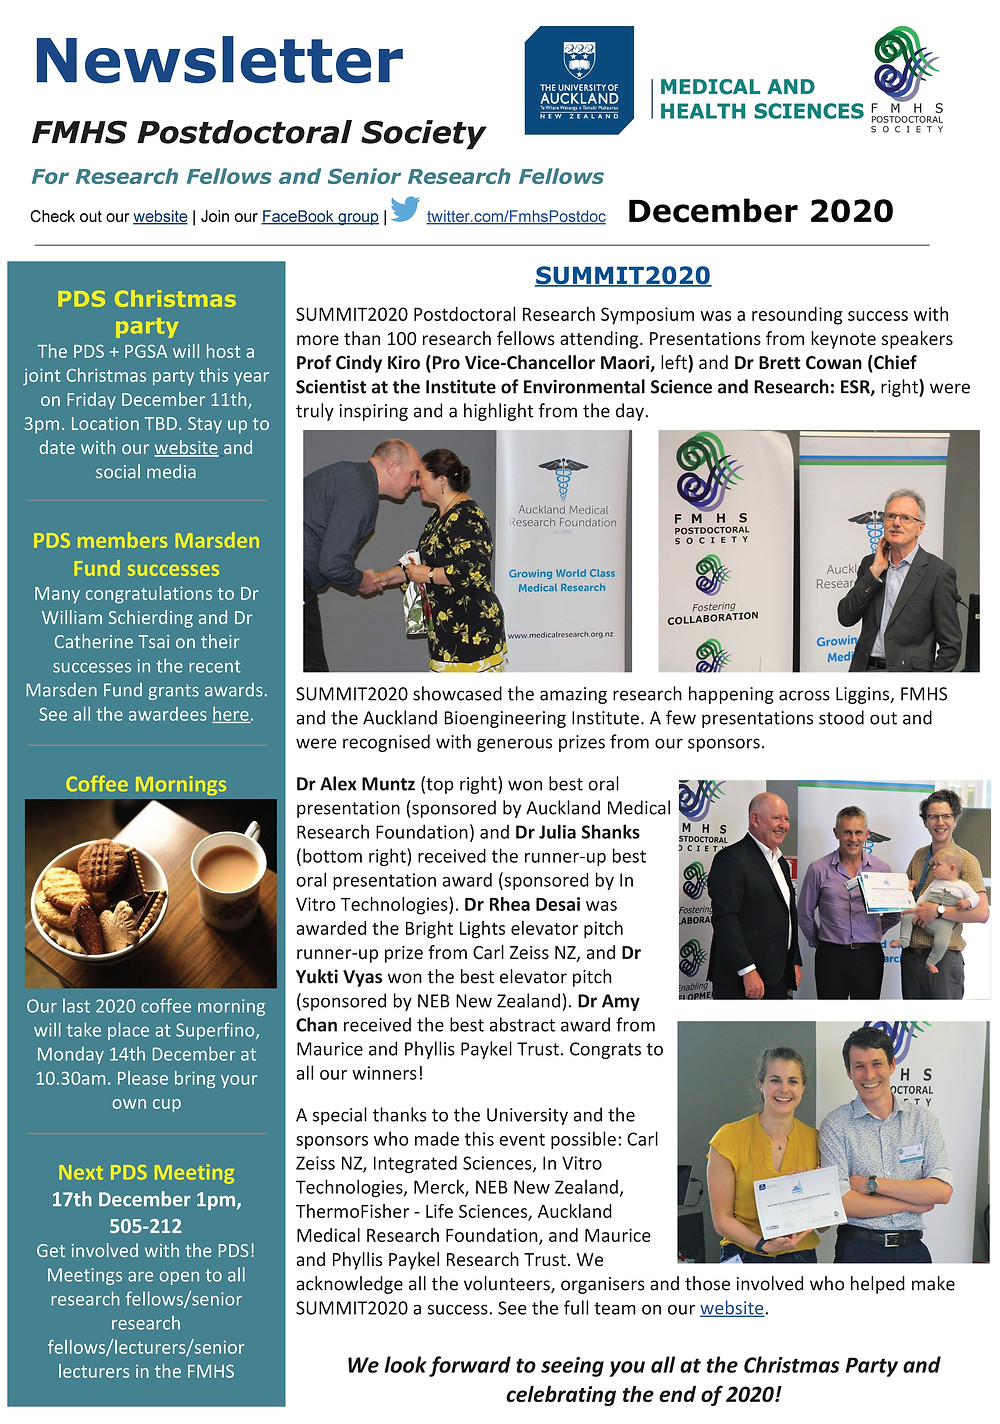 And image of the FMHS Postdoctoral Society newsletter which is available in PDF form at link below